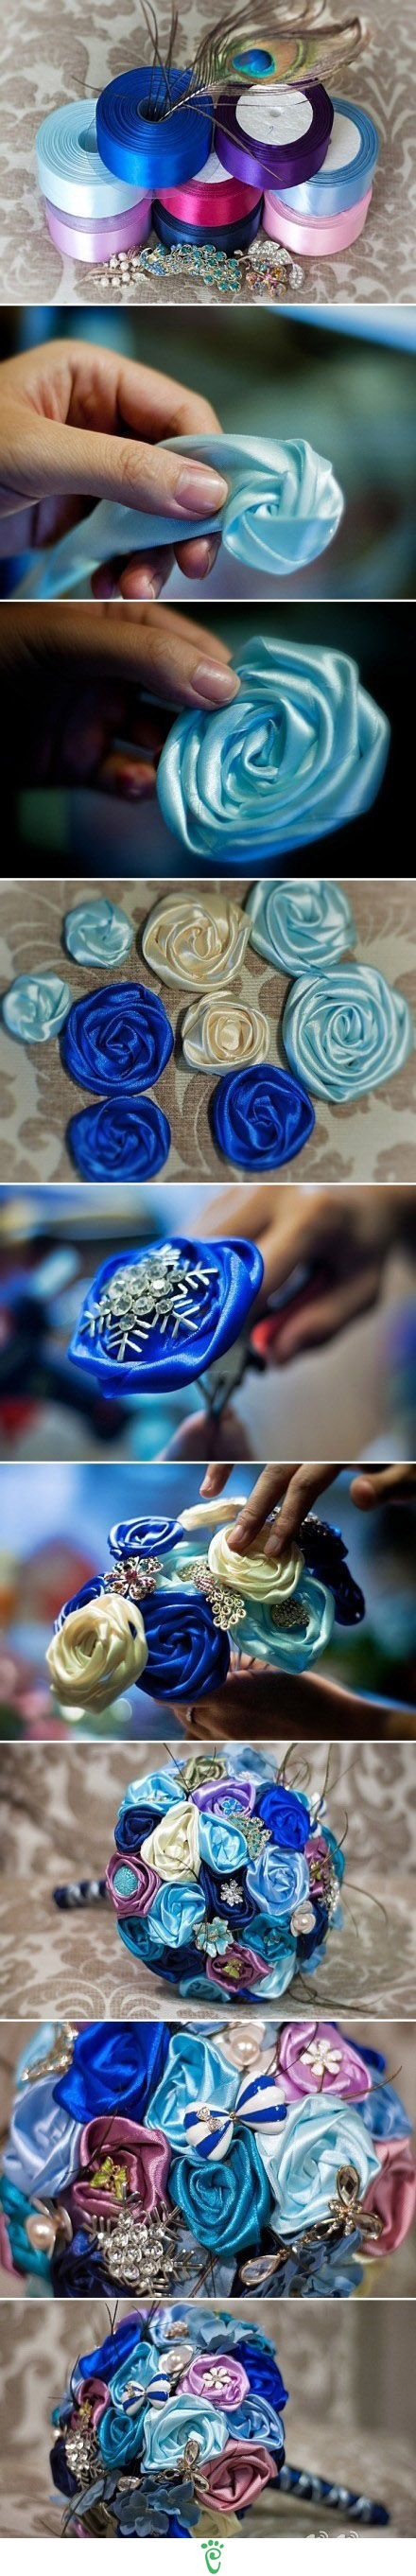 DIY Ribbon Flower Bouquet Pictures, Photos, and Images for Facebook, Tumblr, Pinterest, and Twitter